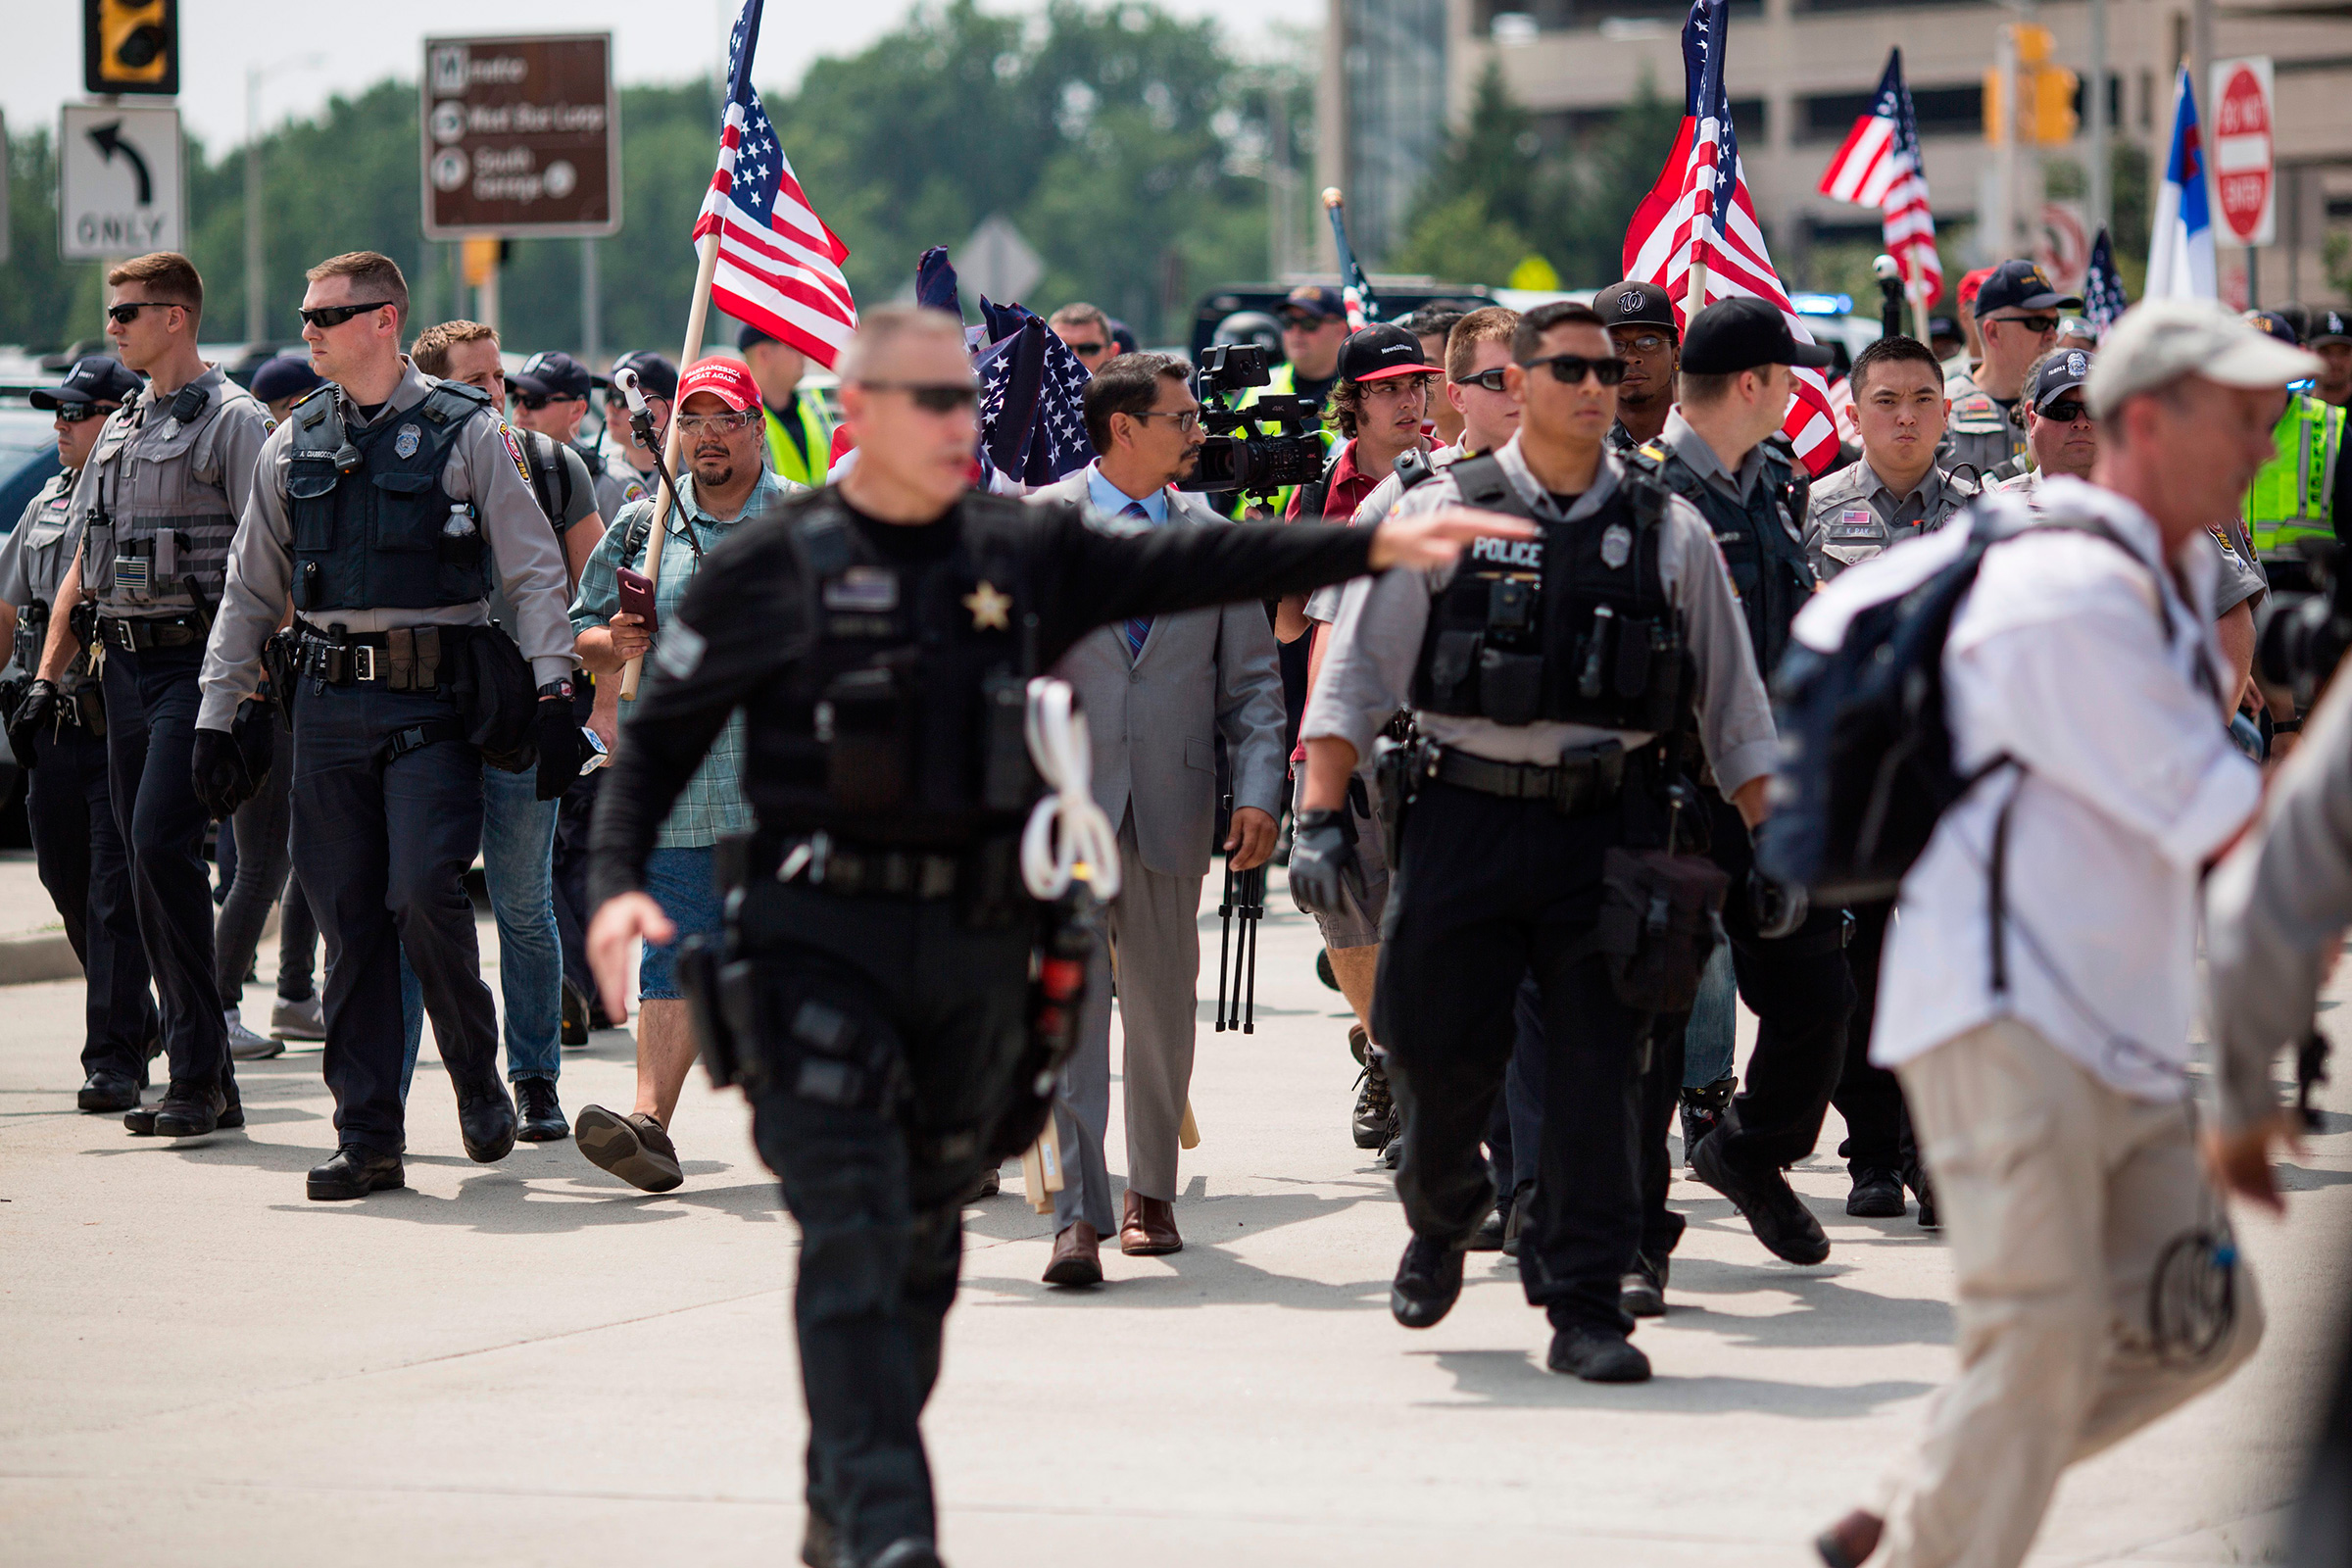 """Police escort demonstrators to the Vienna Metro Station ahead of the """"Unite the Right"""" rally August 12, 2018, in Vienna, Virginia"""